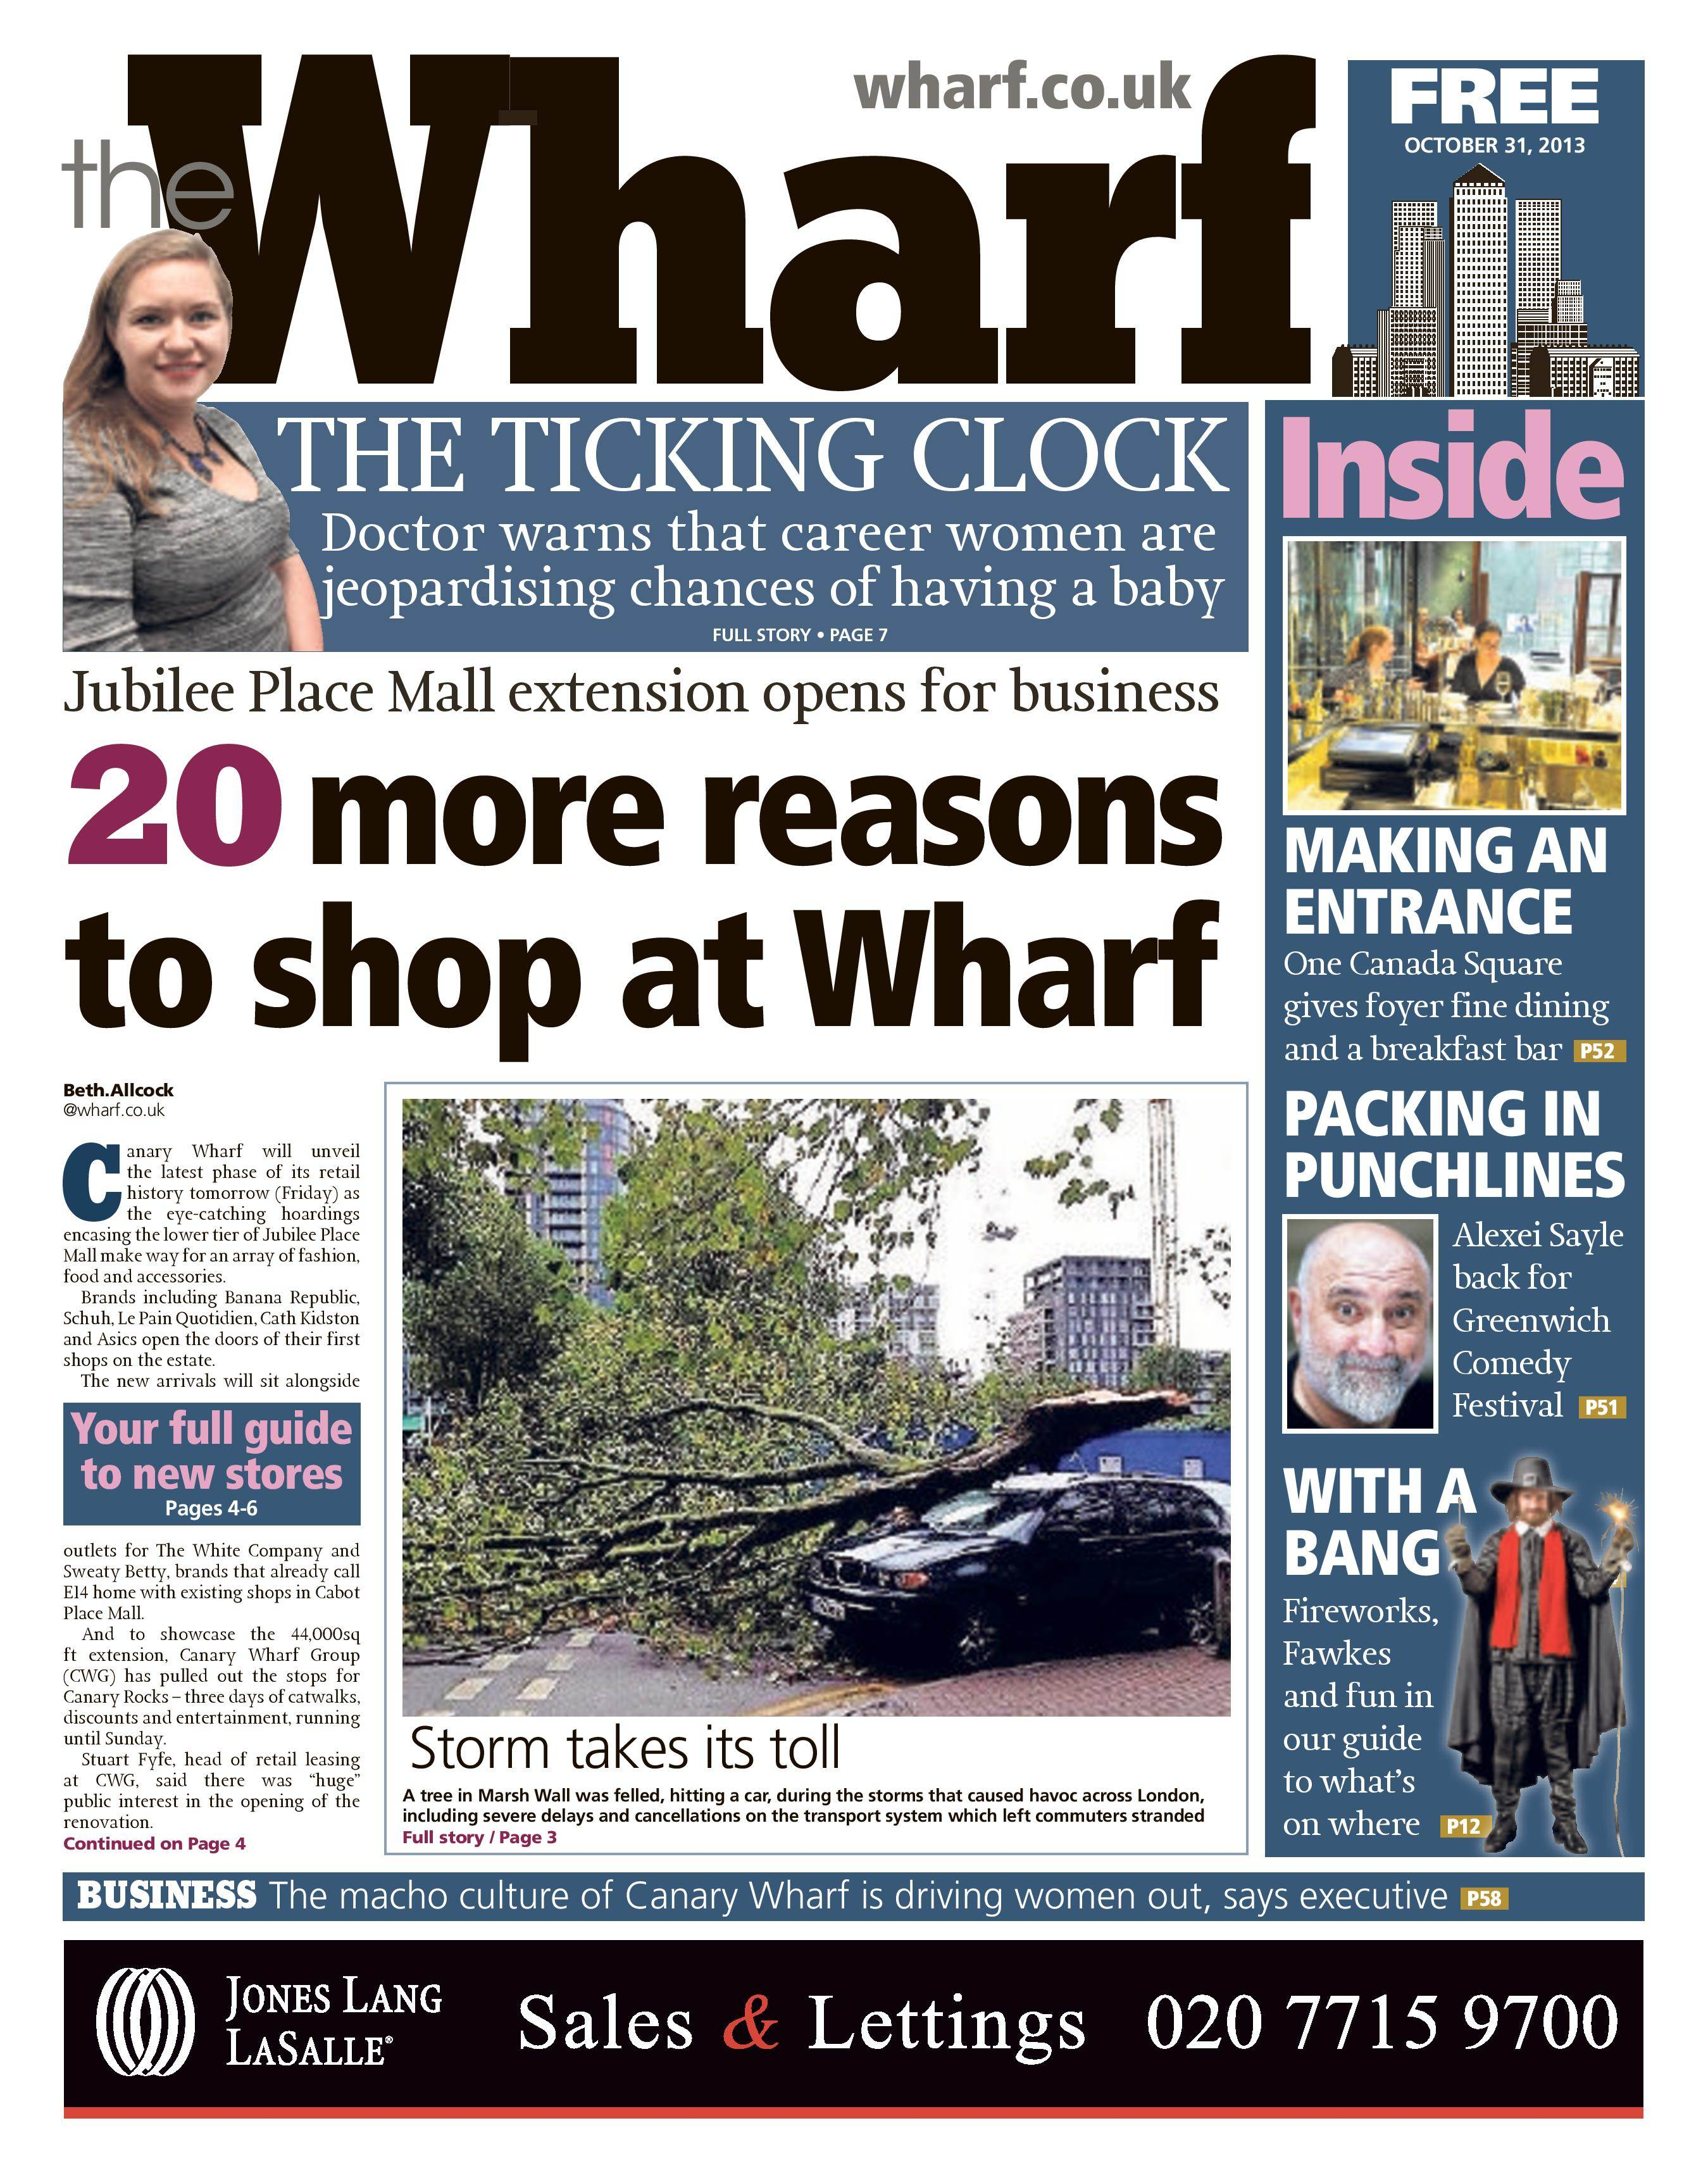 Wharf newspaper features Body Bureau